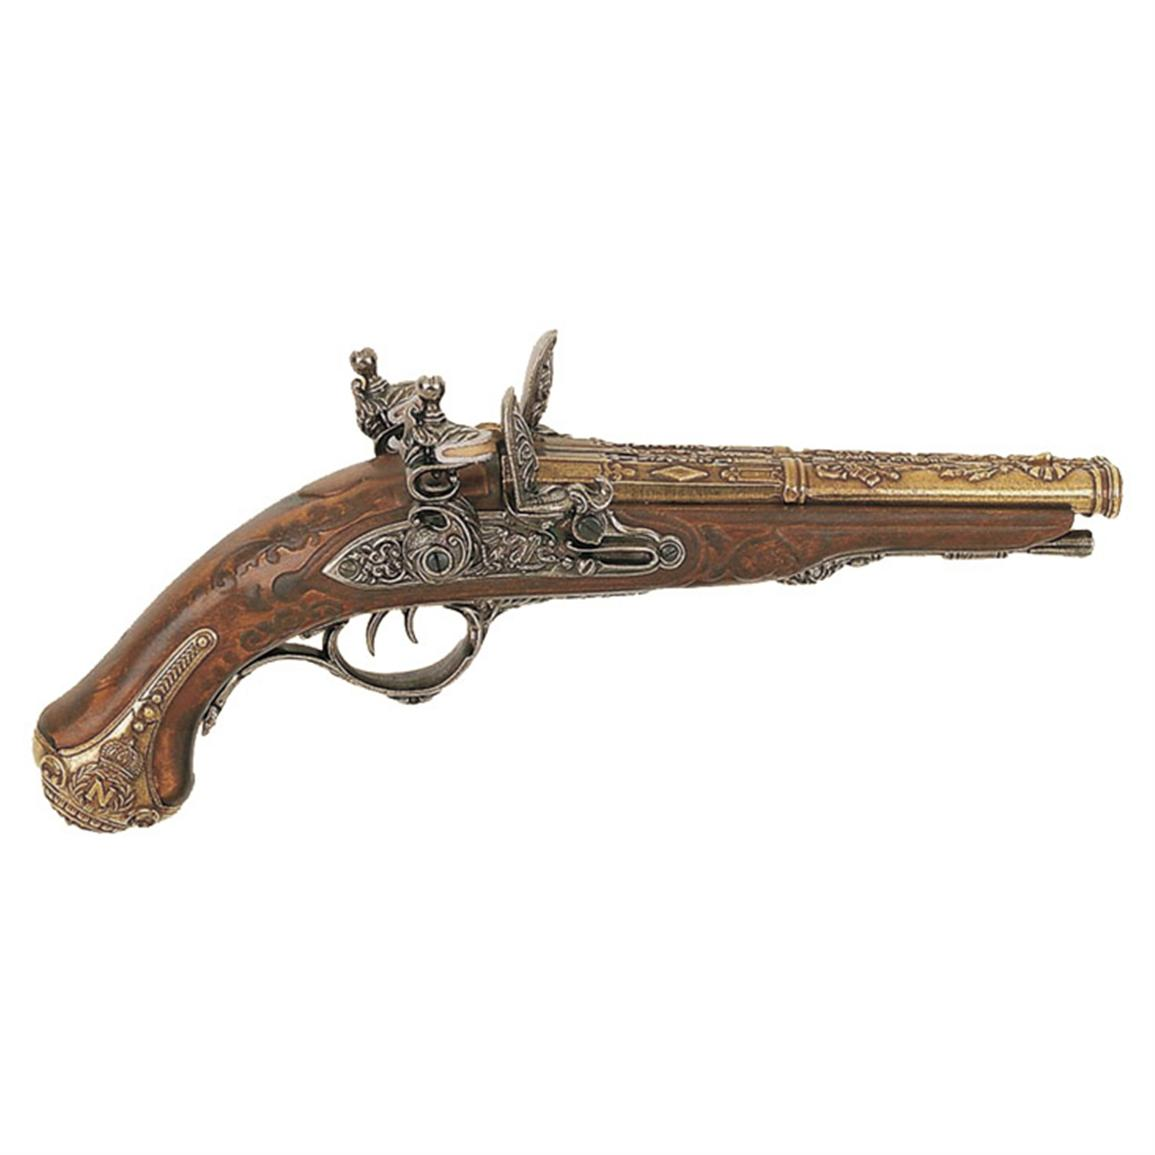 LMTD The Double-barrelled Pistol of Napoleon Replica